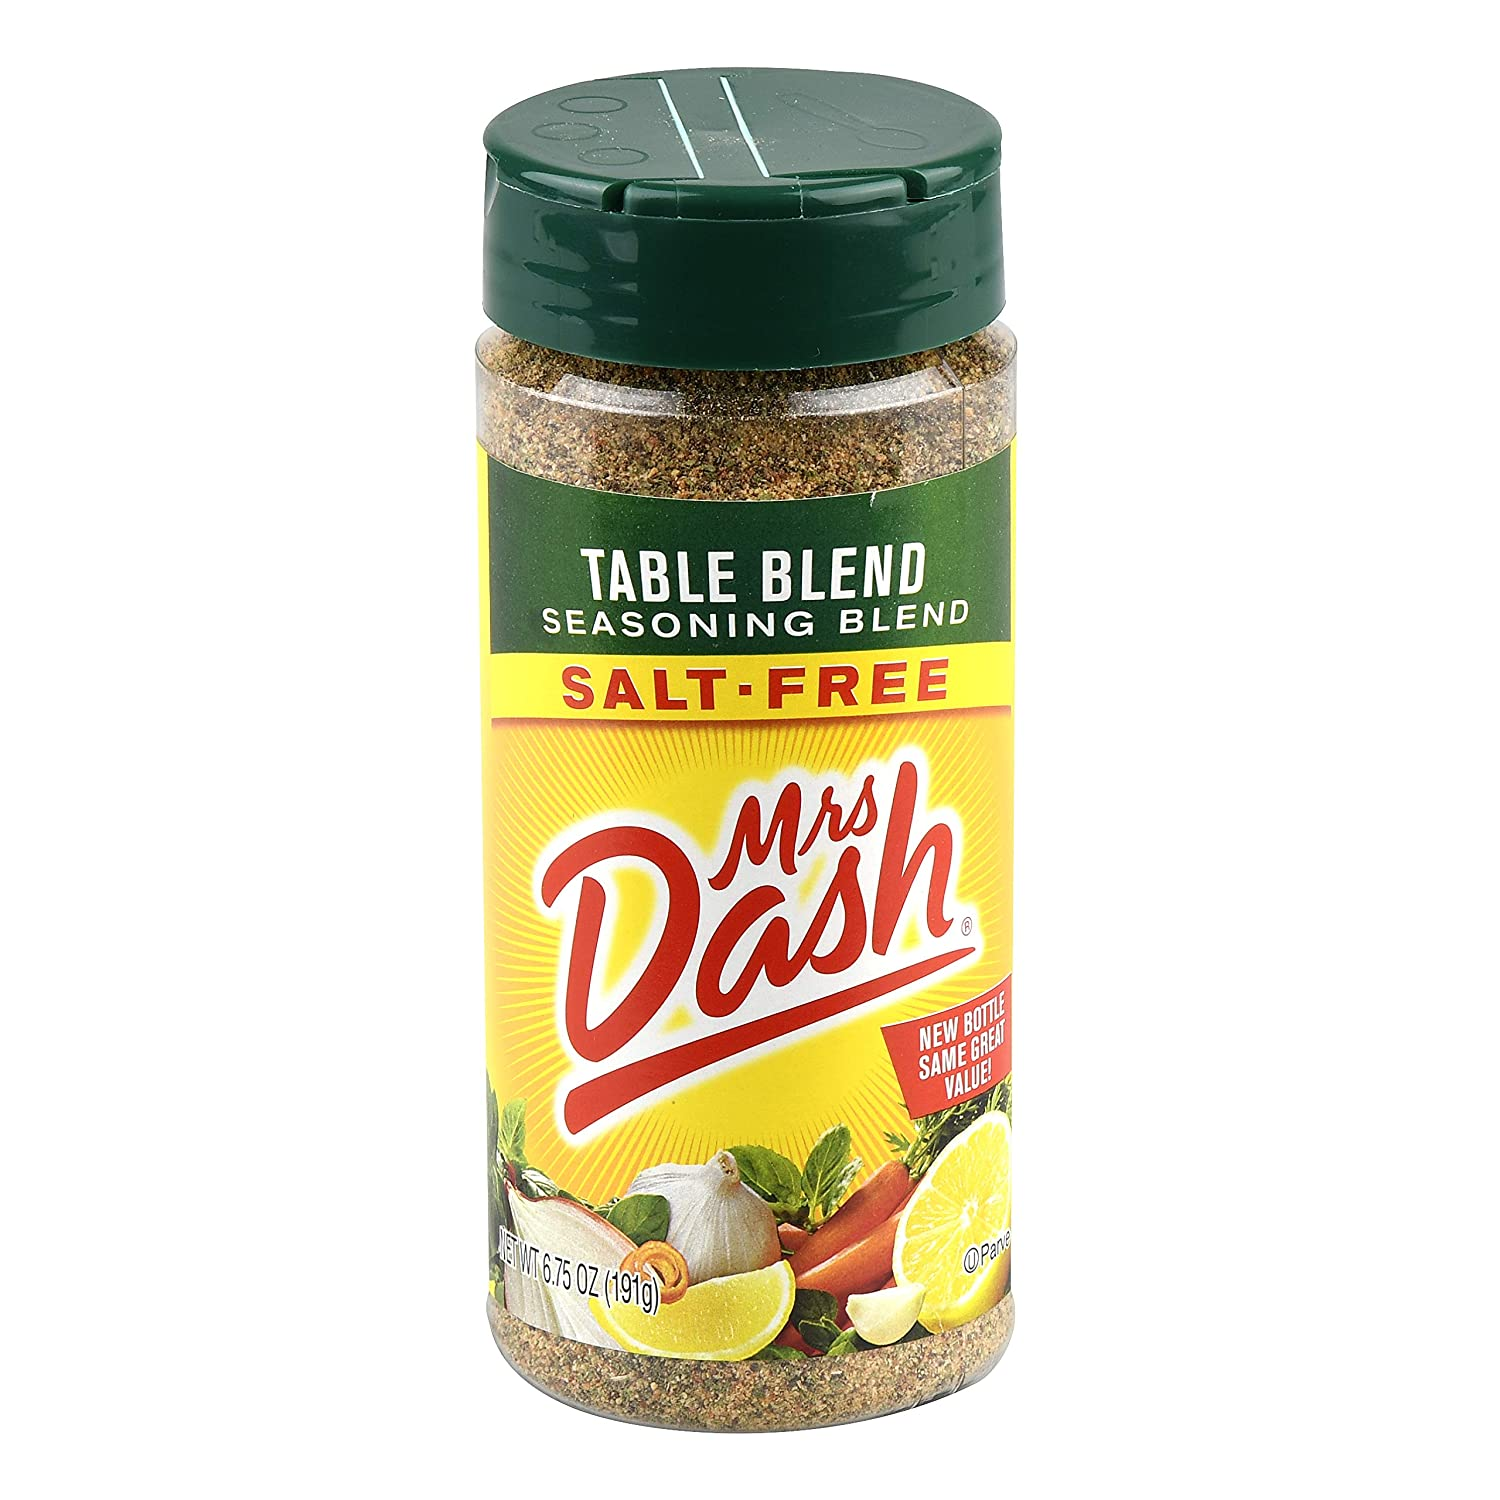 Mrs.Dash Table Blend Seasoning Blend Salt-Free (NET WT 6.75 OZ)